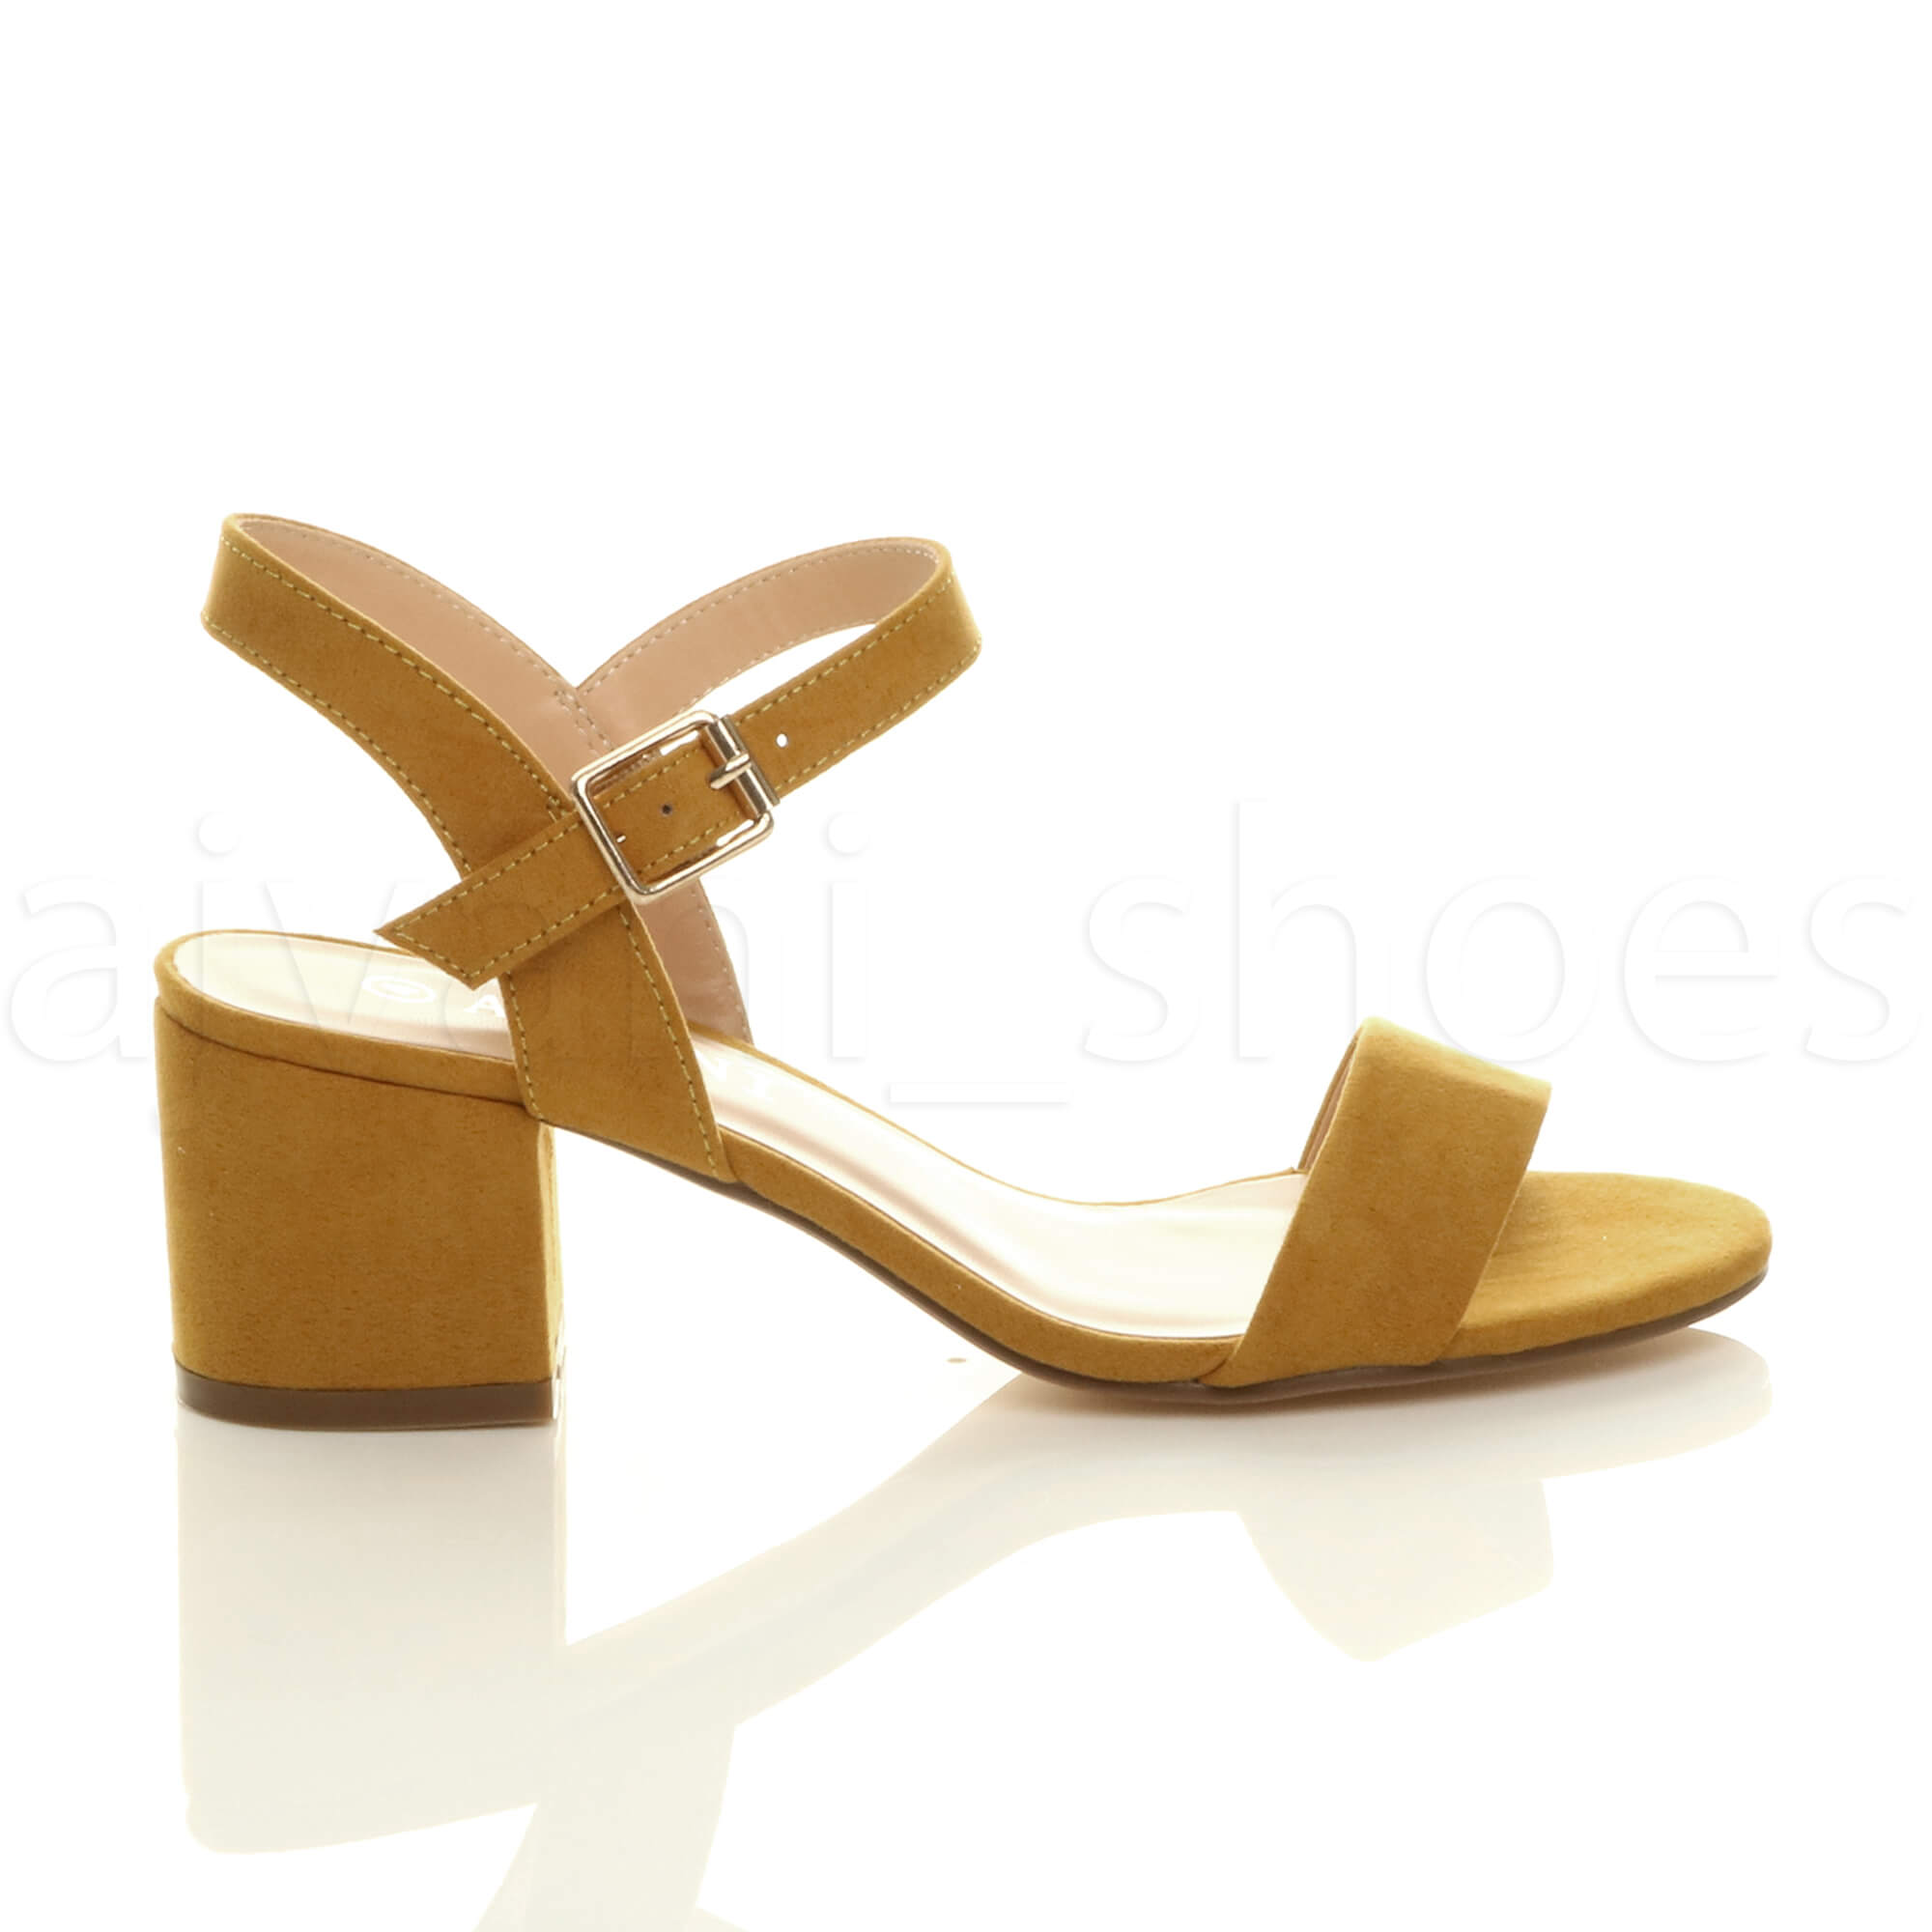 WOMENS-LADIES-MID-LOW-BLOCK-HEEL-PEEP-TOE-ANKLE-STRAP-STRAPPY-PARTY-SANDALS-SIZE thumbnail 75